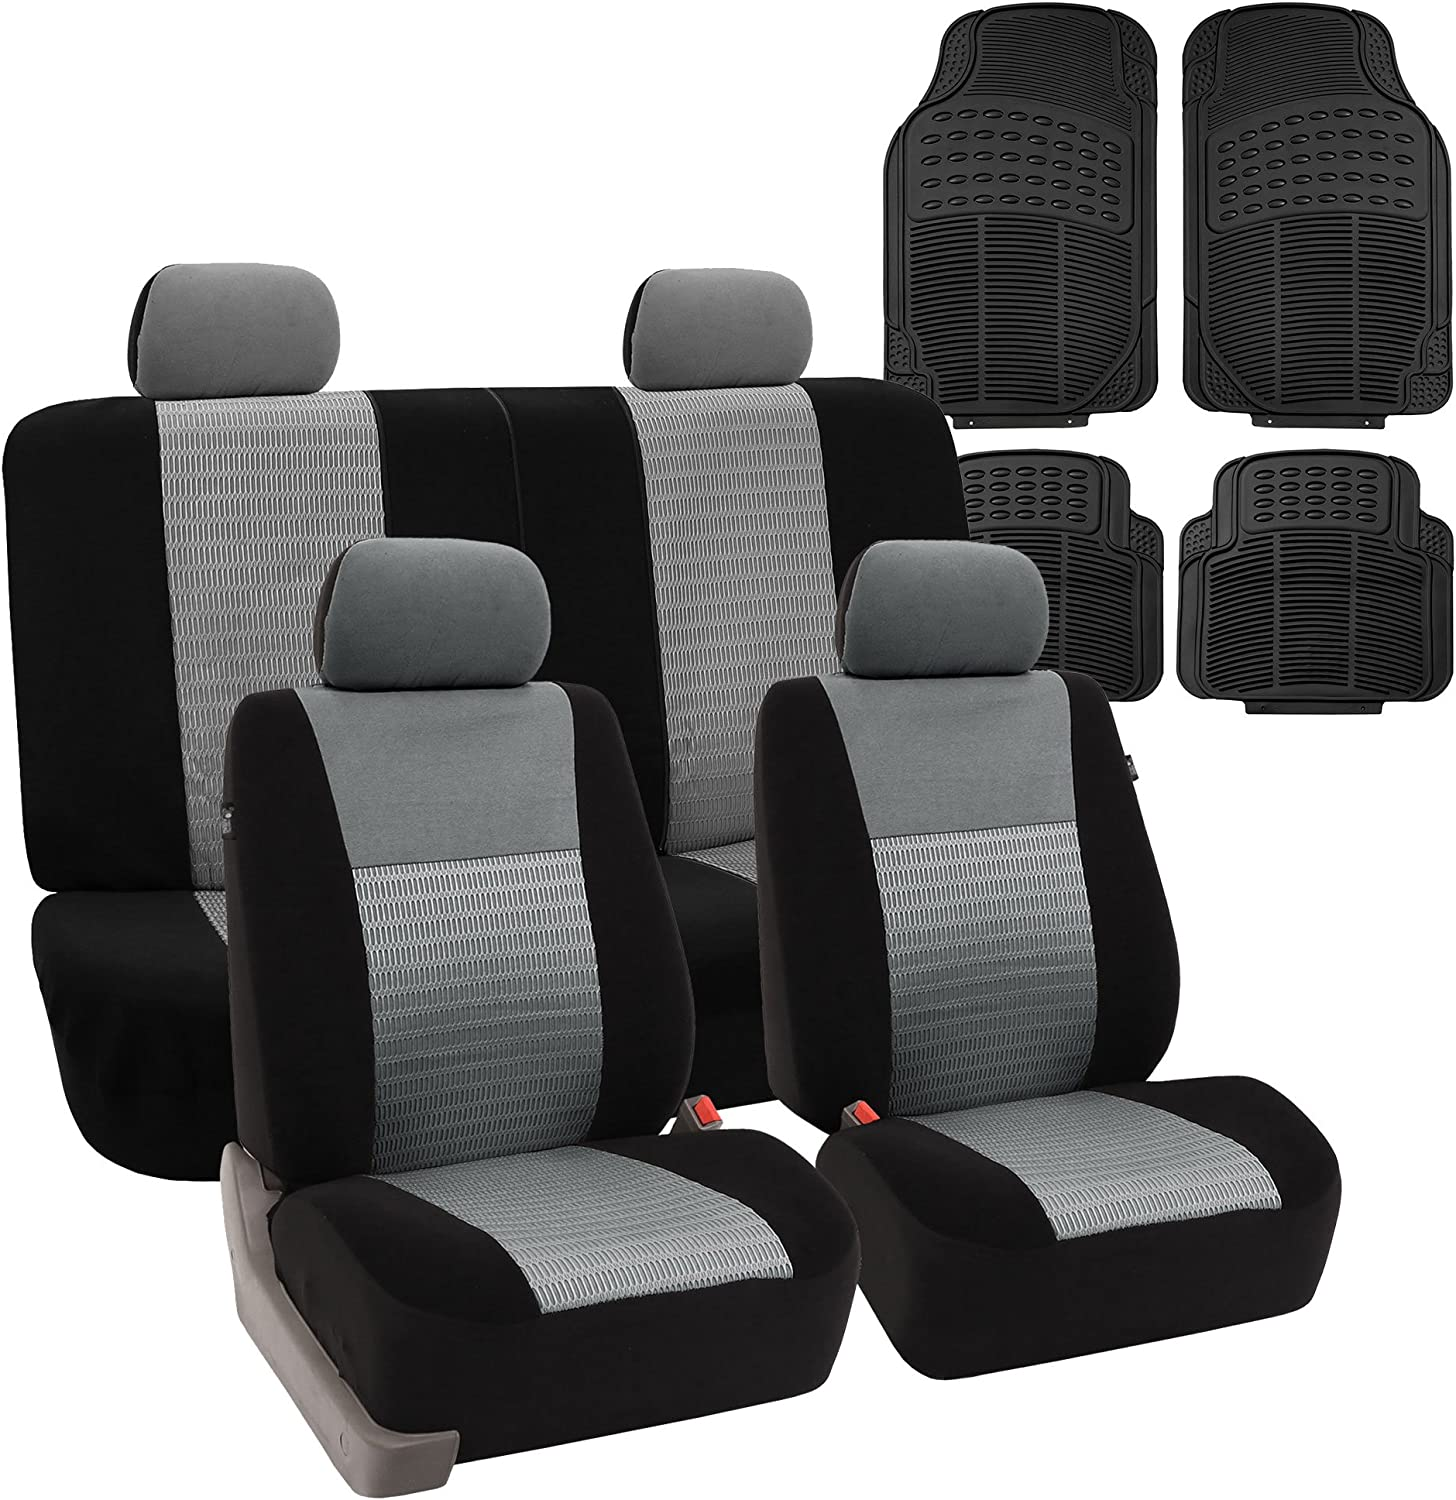 FH Group FB060114 Combo Set: Trendy Elegance Full Set Car Seat Covers, Airbag & Split Ready, Gray/Black Color w. F11305 Black Rubber Floor Mats- Fit Most Car, Truck, SUV, or Van